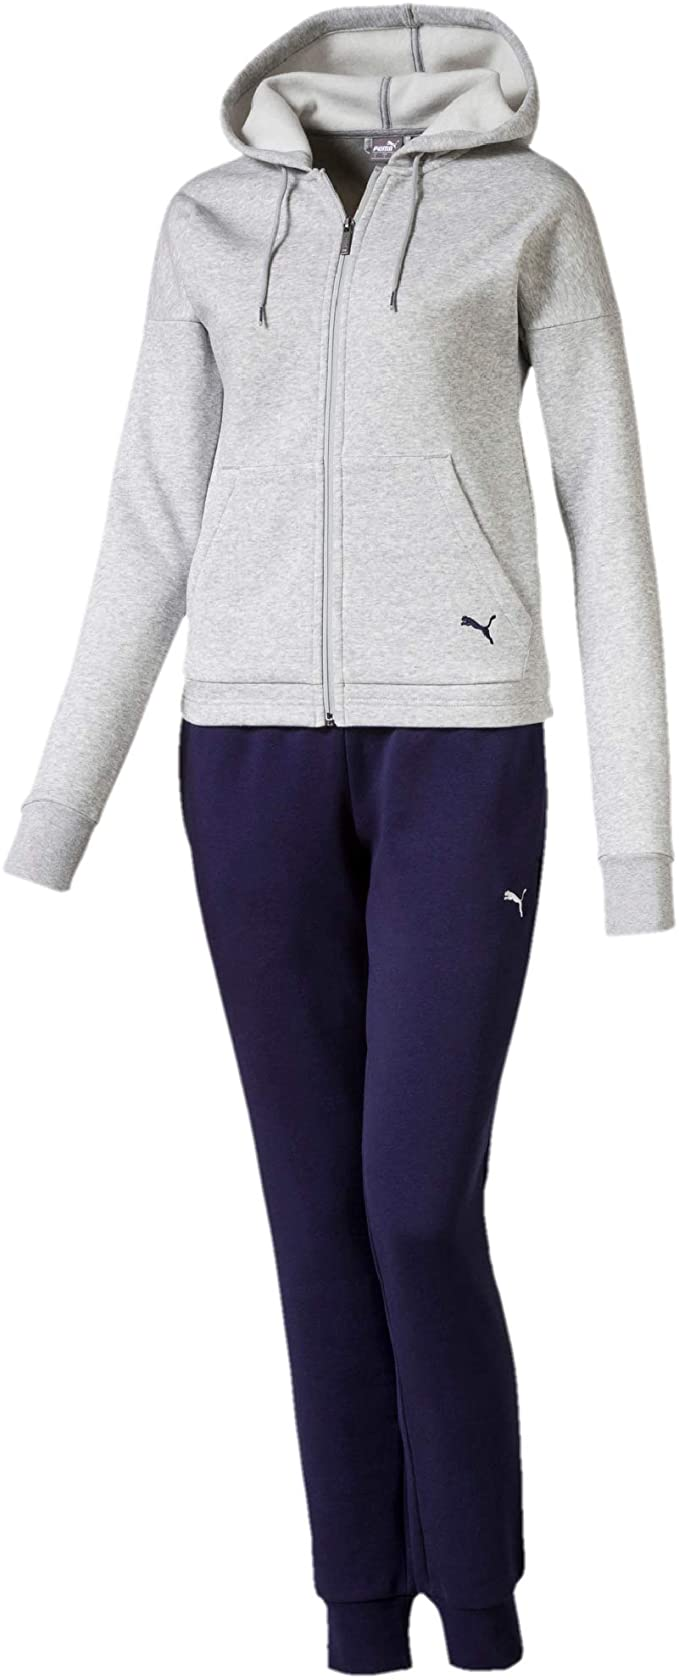 PUMA Classic HD. Sweat Suit, Cl Chándal, Mujer